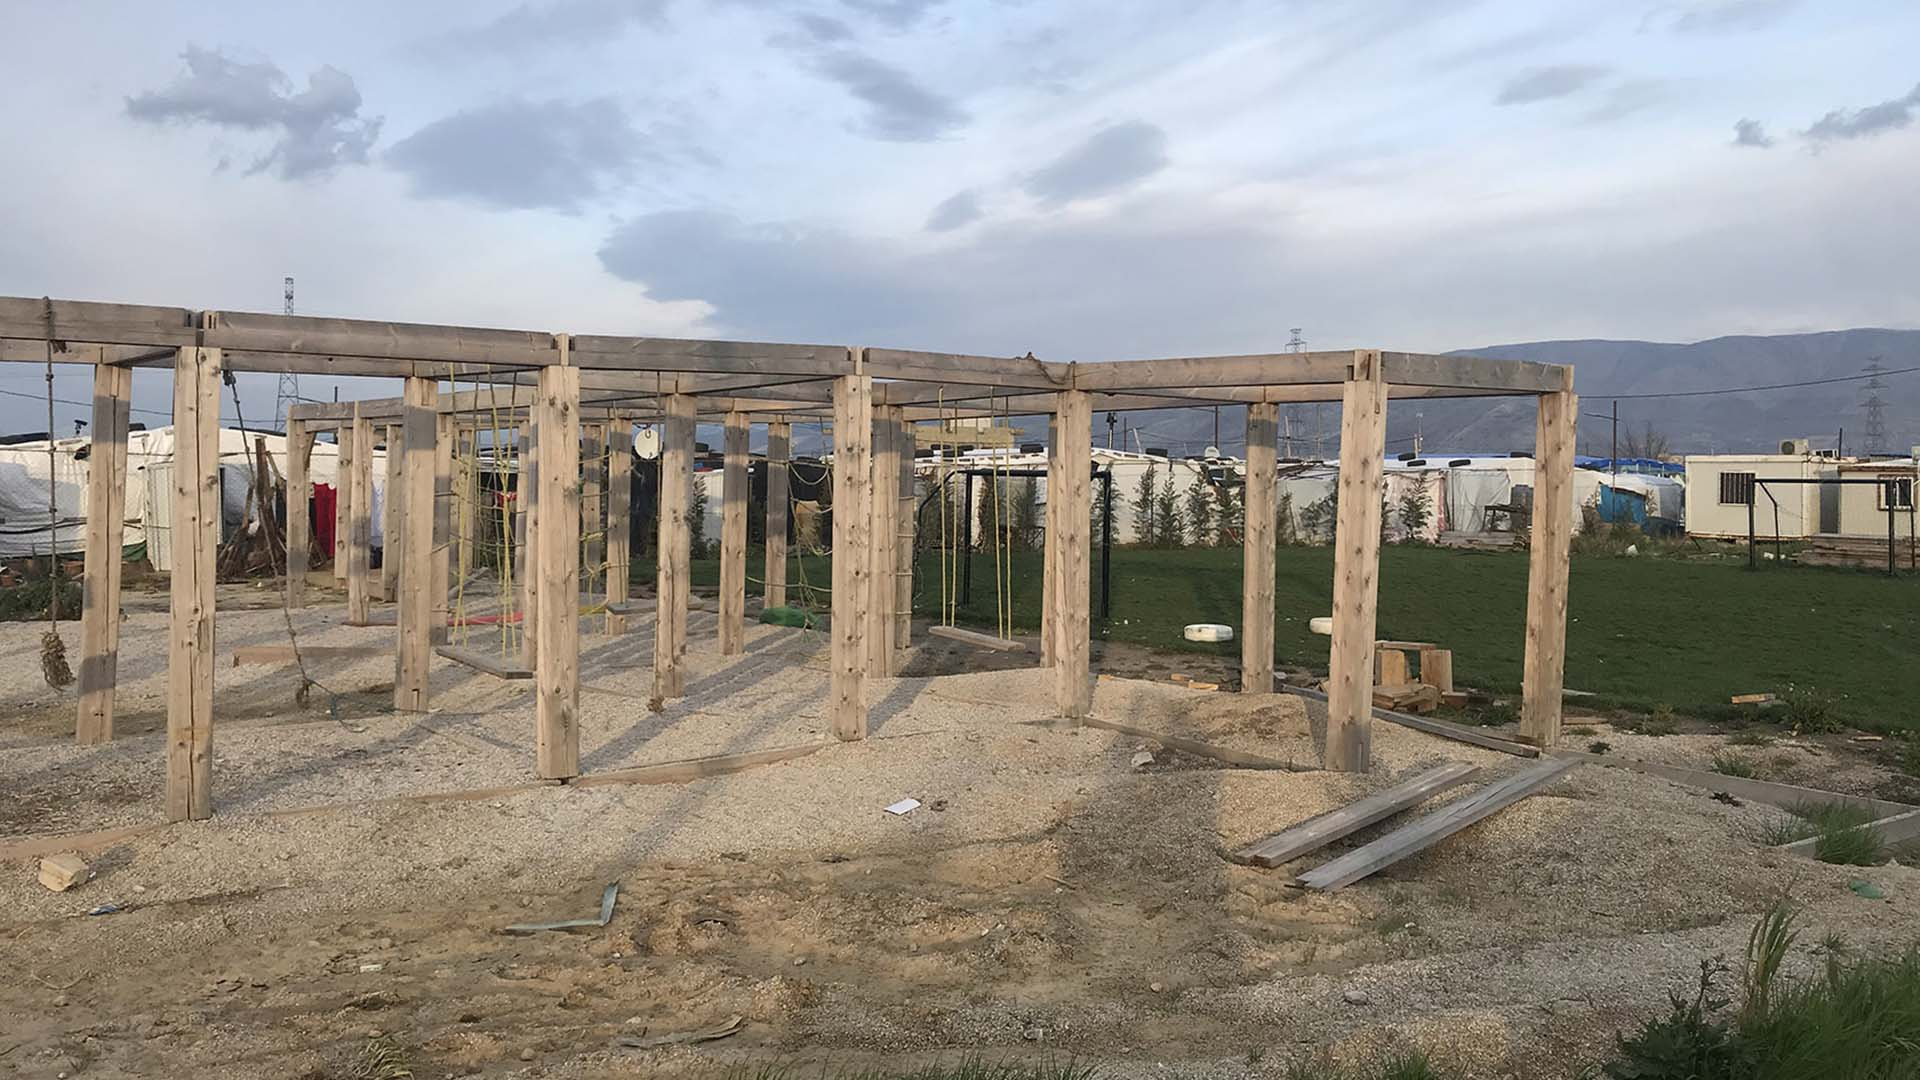 A playground in Bar Elias designed for refugees in Lebanon